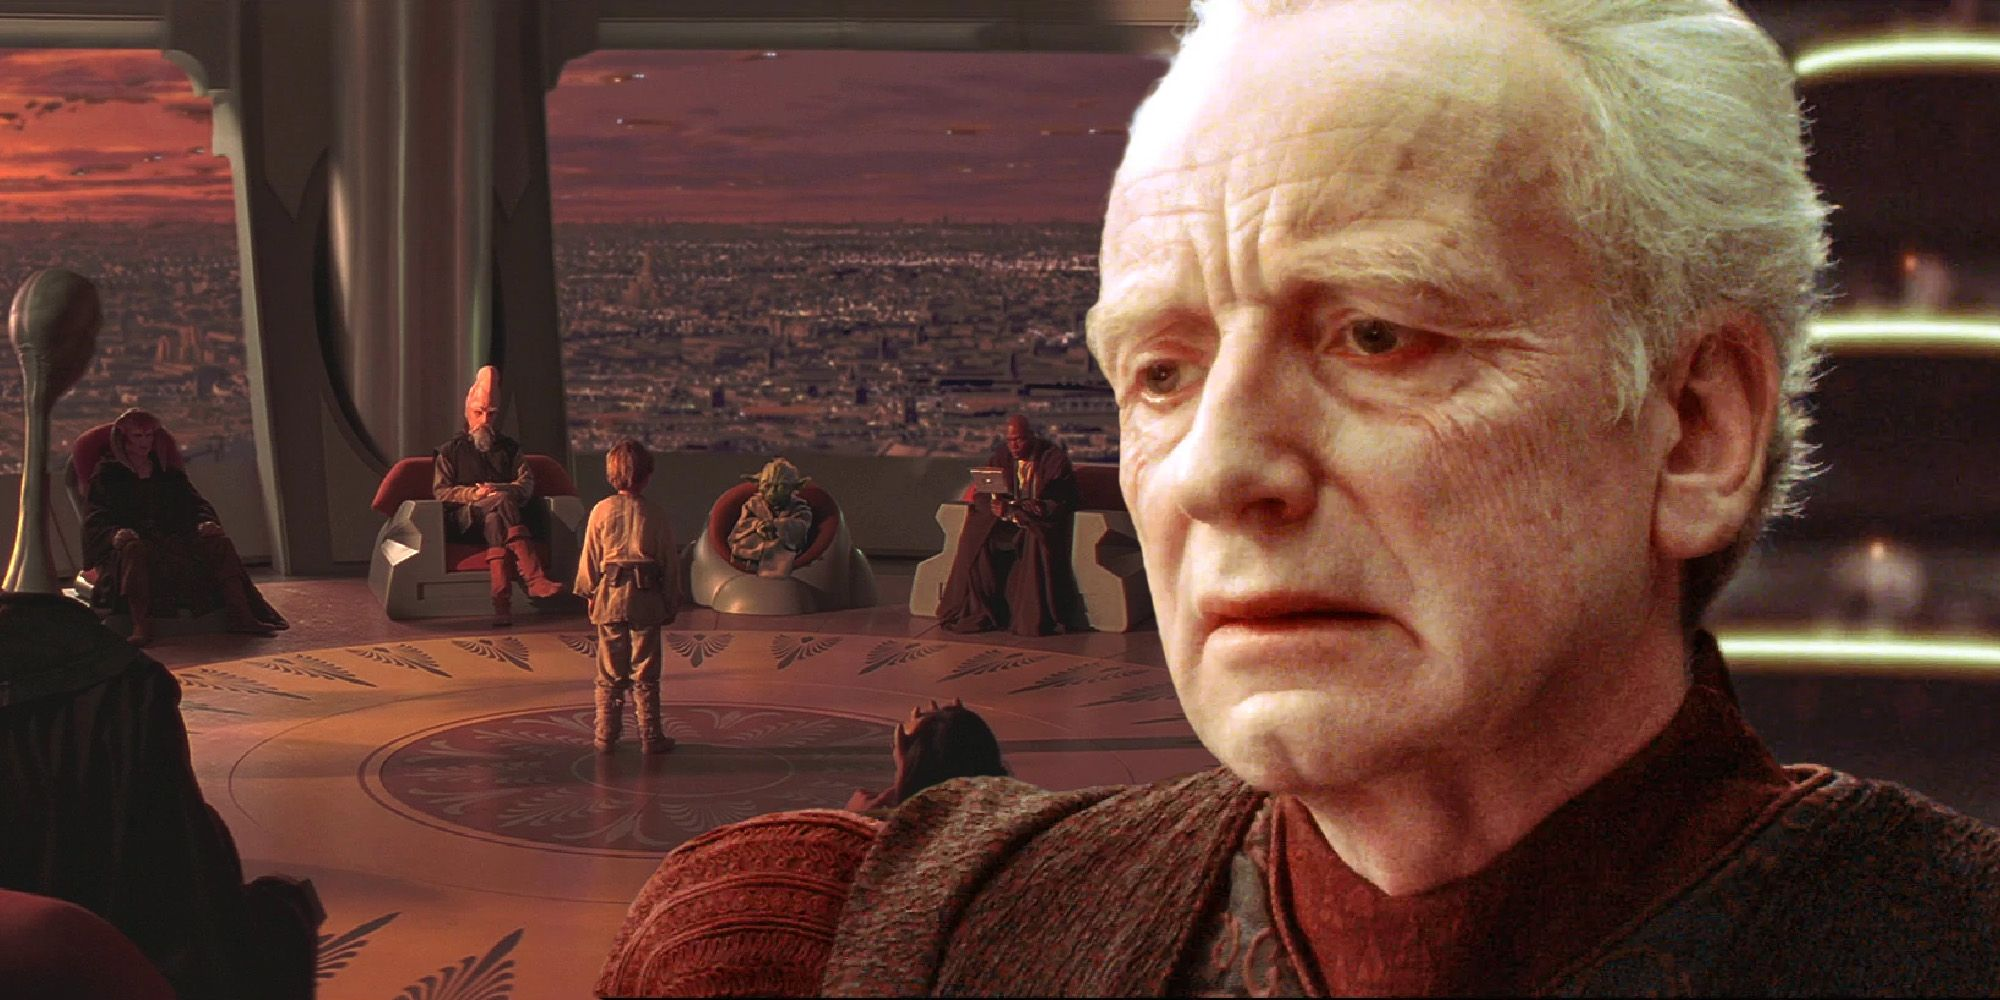 Star Wars Reveals How Palpatine Cut The Jedi Off From The Force